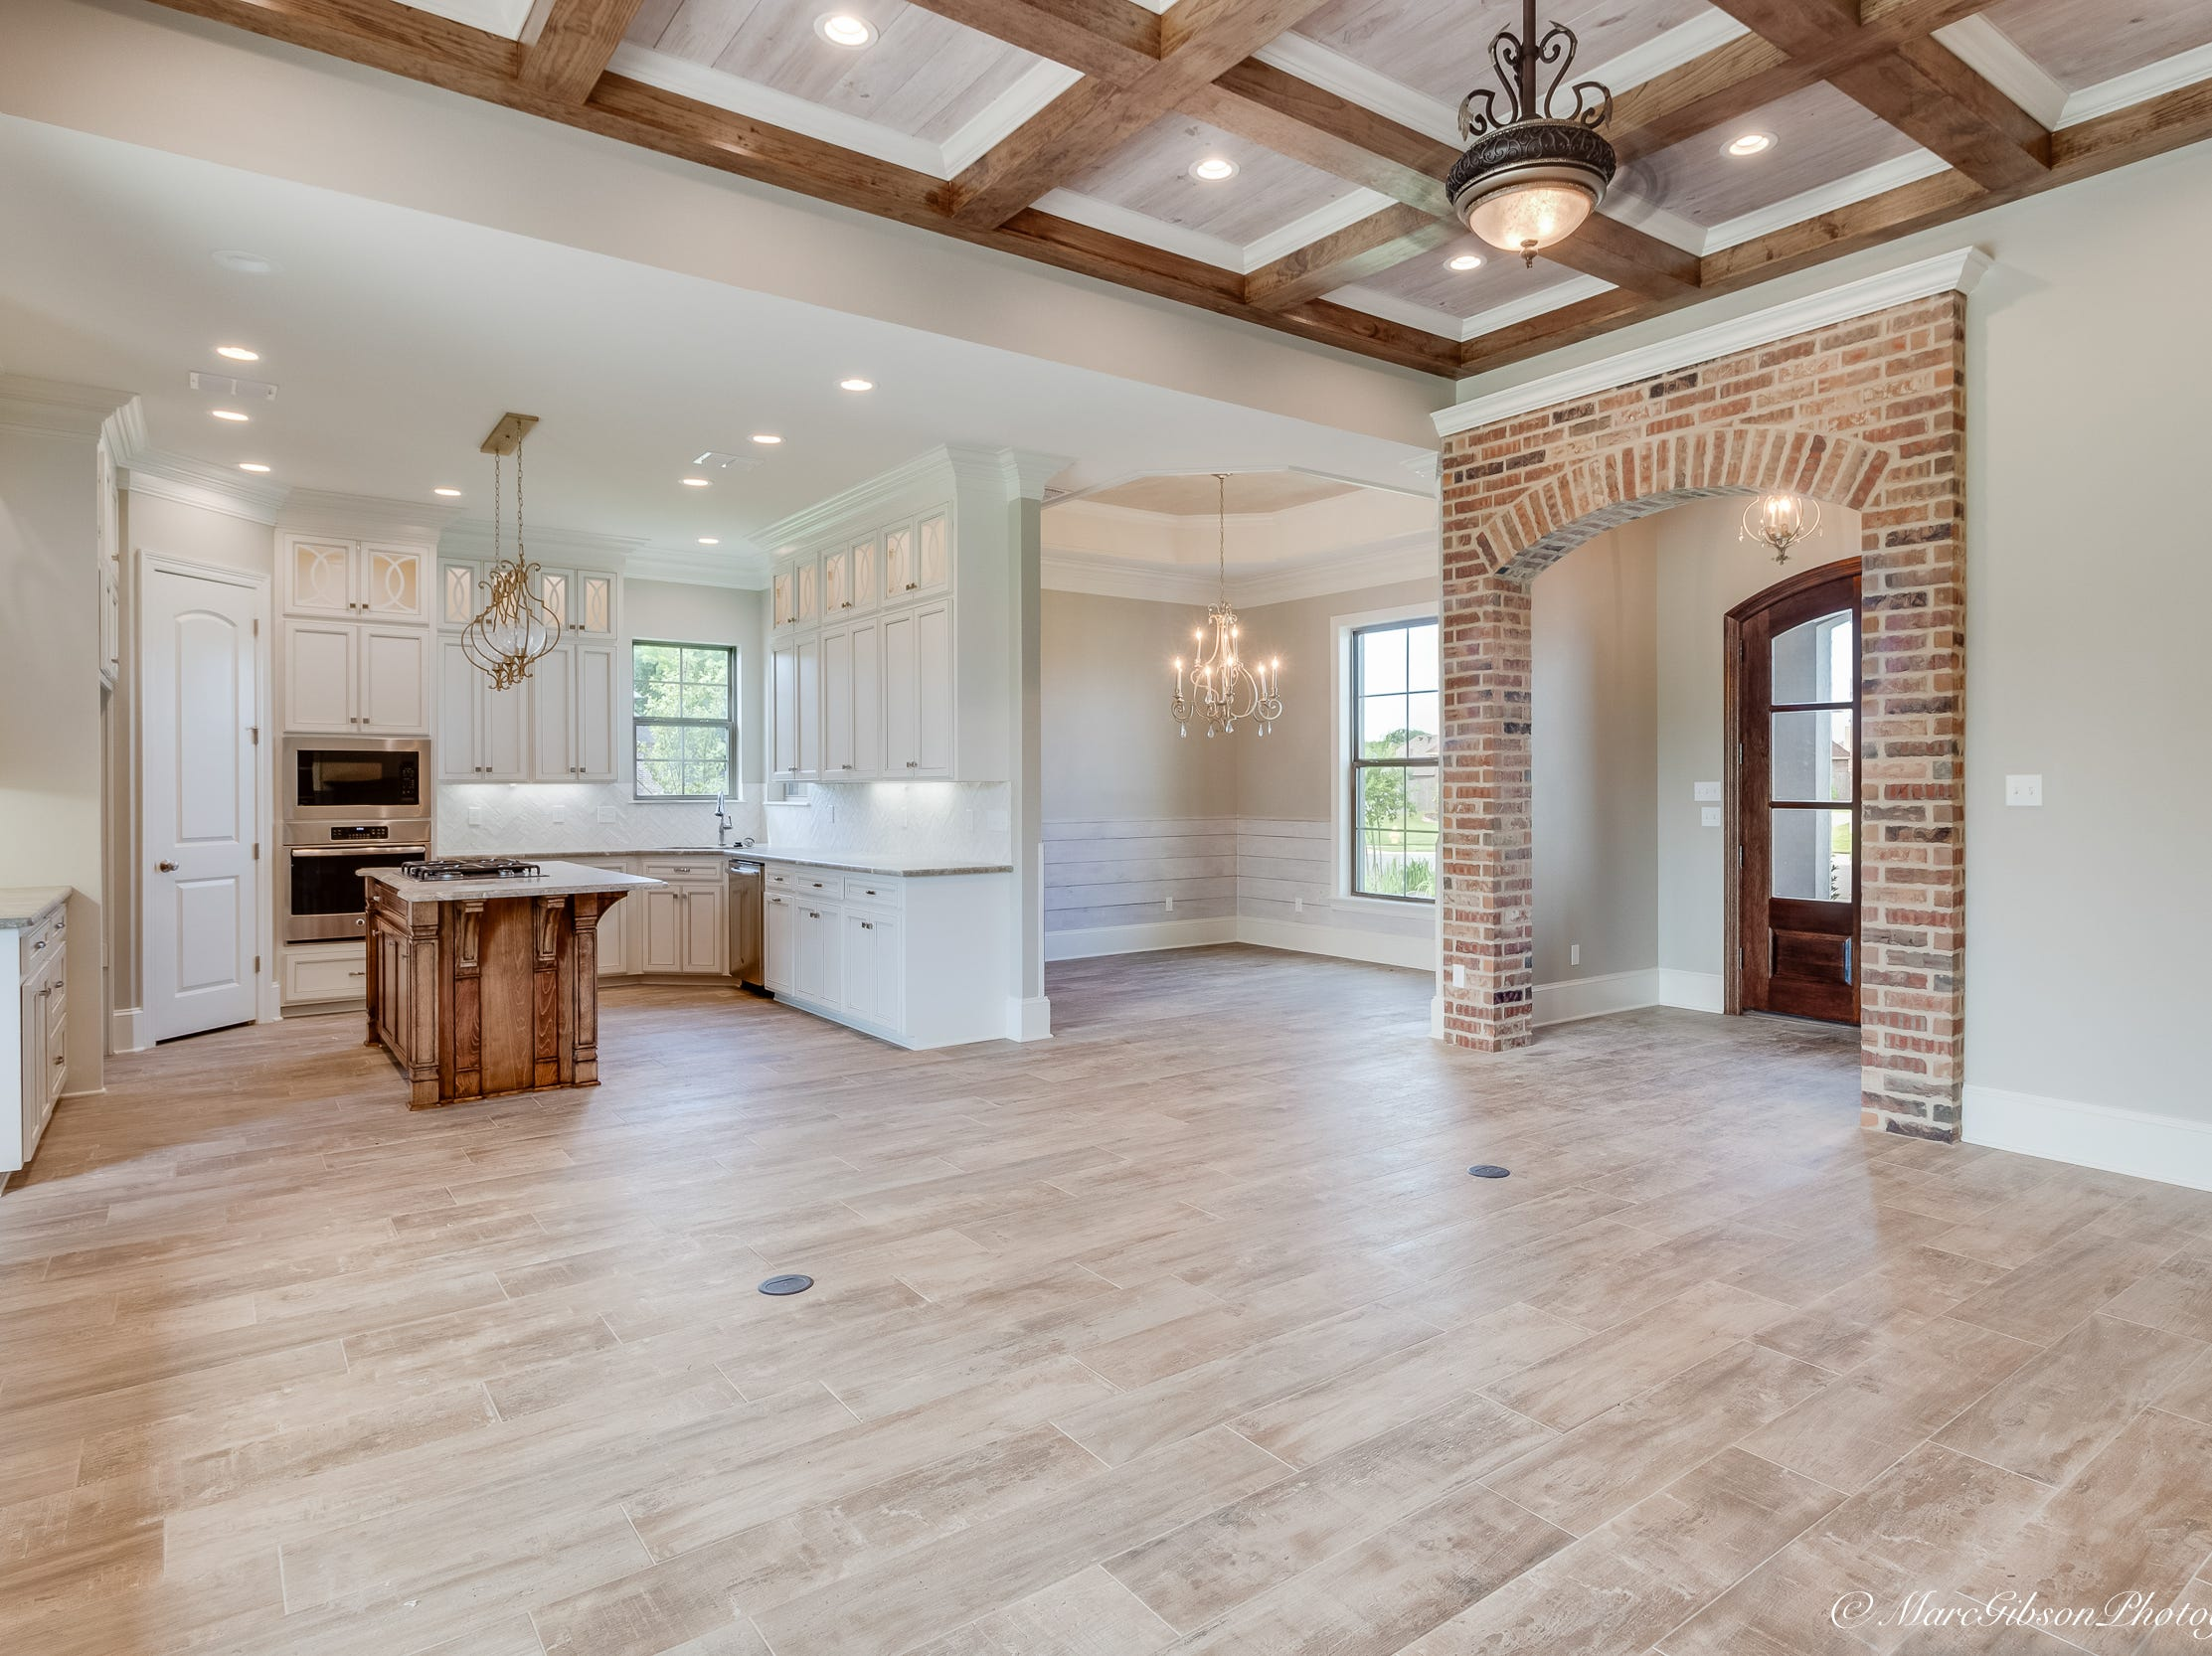 2029 Woodberry Ave., Shreveport  Price: $384,000  Details: 3 bedrooms, 2 bathrooms, 1,780 square feet  Special features: Provenance beauty overlooking the parks, new construction with high-end finishes.   Contact: Sara Hill,   683-0399